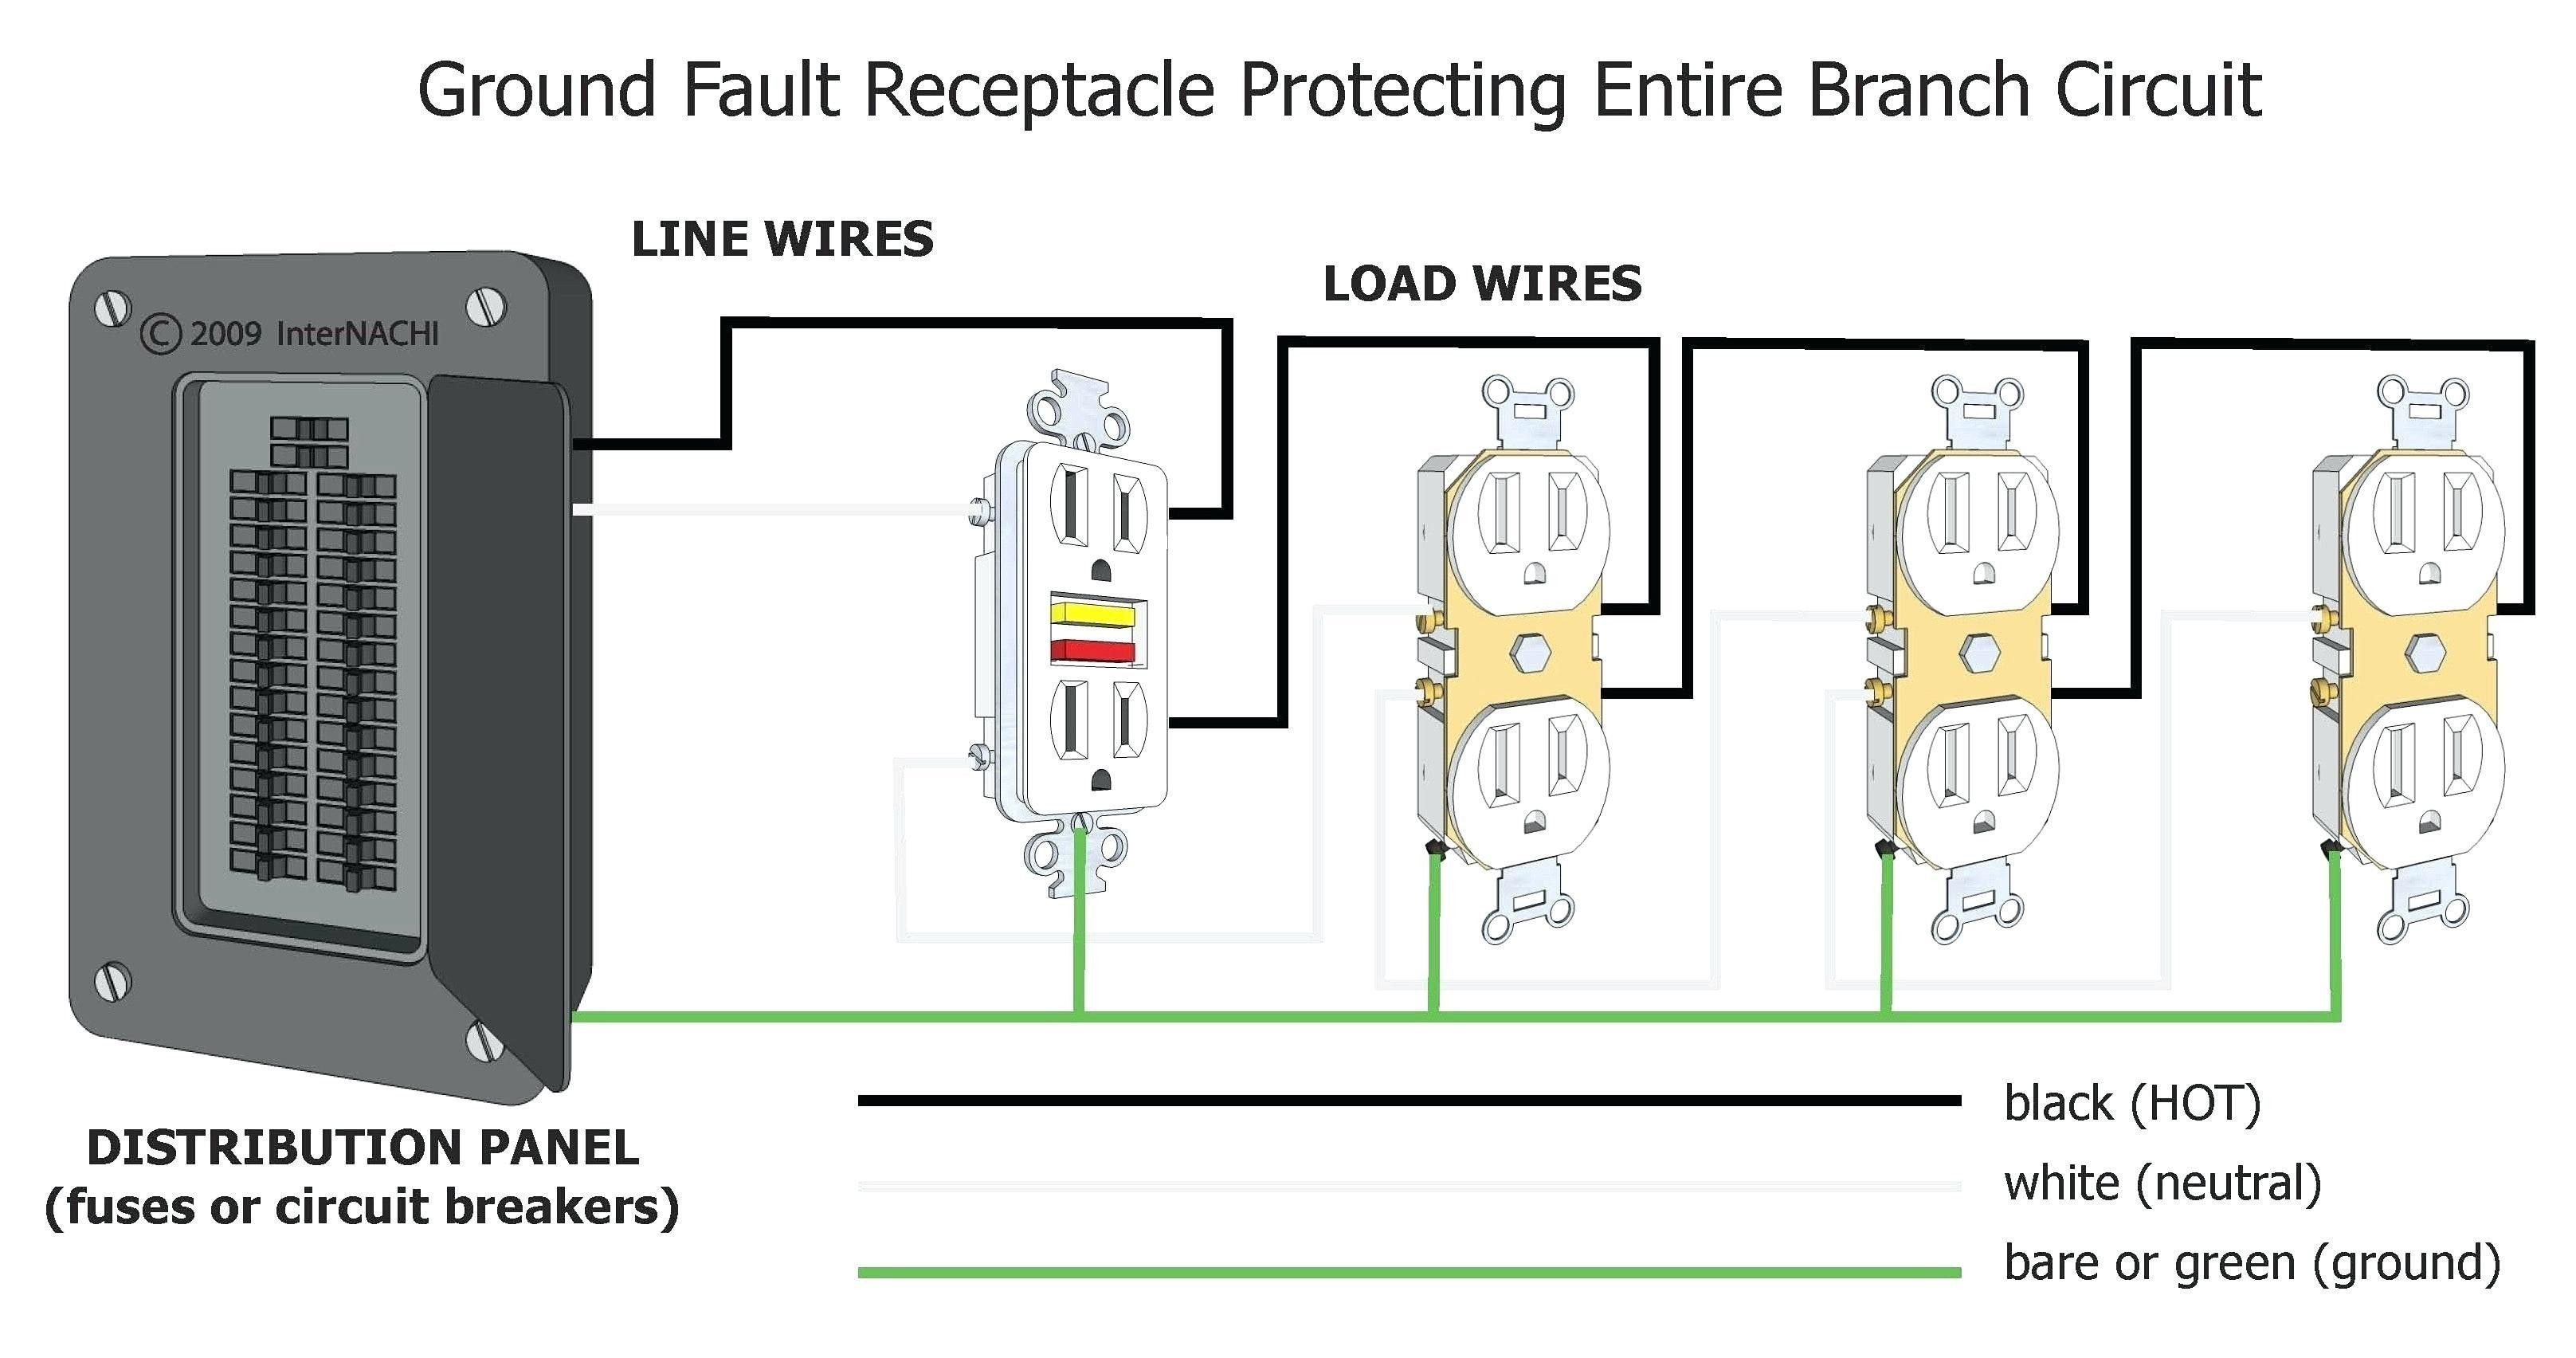 new electrical circuit diagram house wiring diagram diagramsample new electrical circuit diagram house wiring diagram diagramsample [ 3233 x 1704 Pixel ]